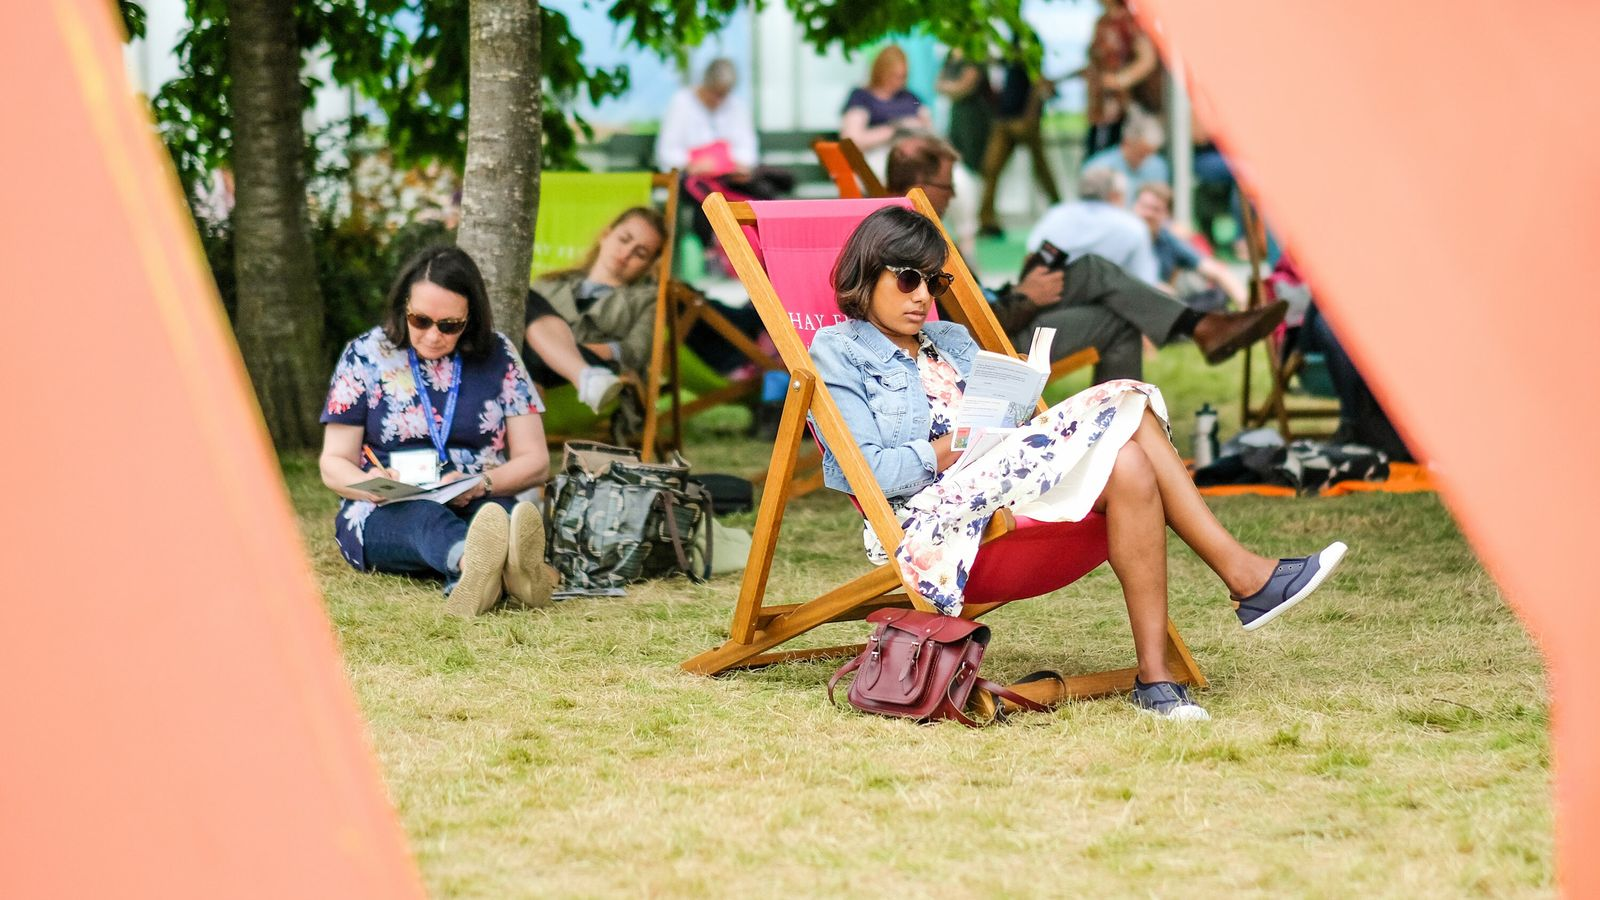 A festival attendee in a deckchair enjoys a book at 2019's Hay Festival, Wales.